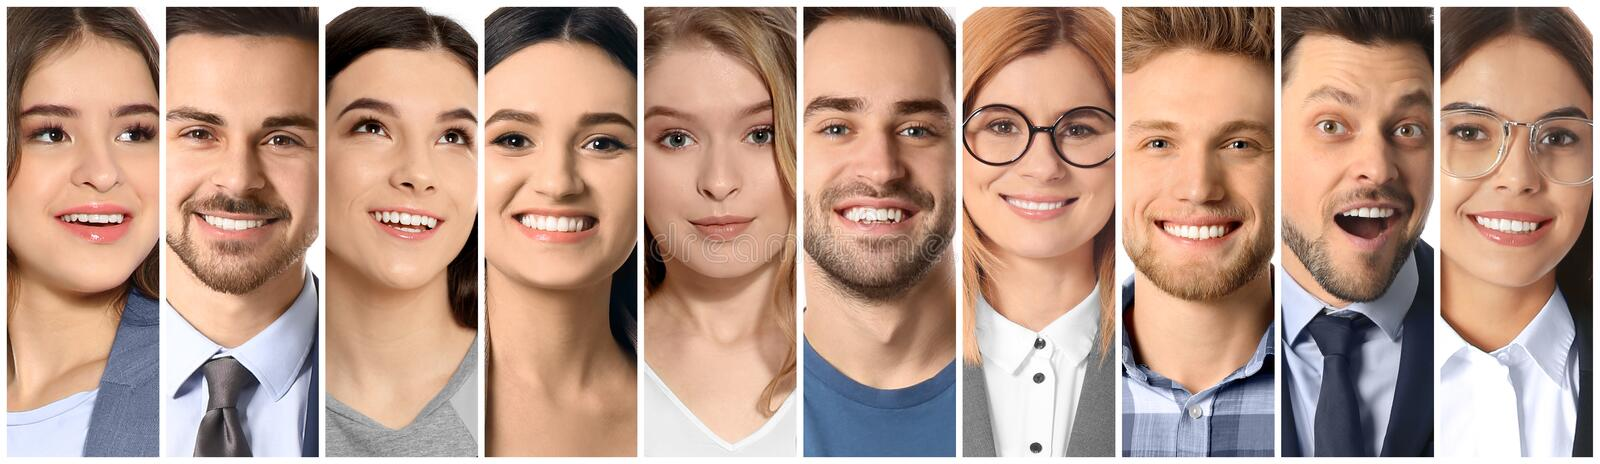 Collage of smiling people, closeup stock image